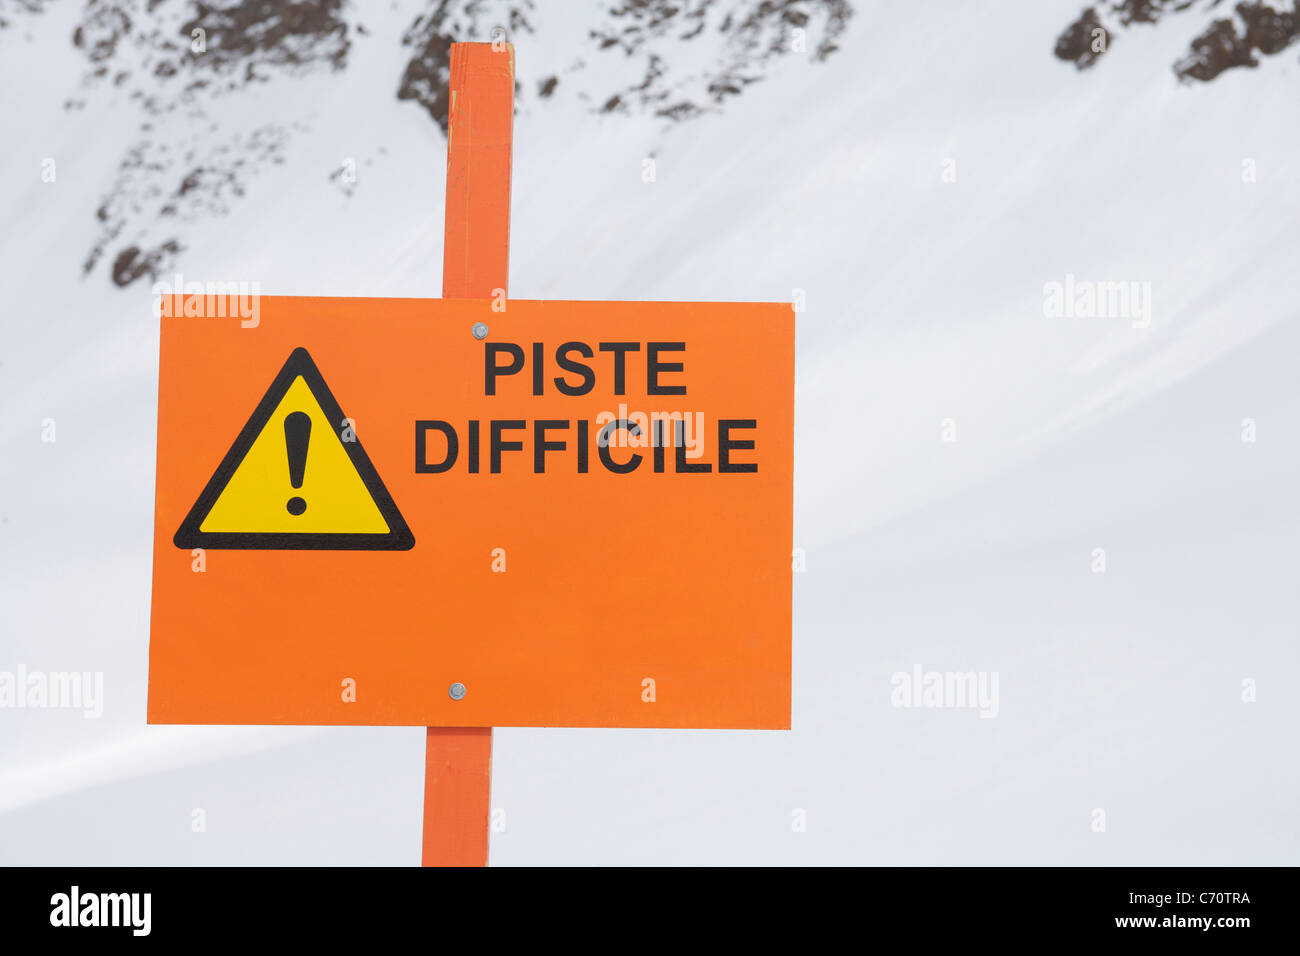 Sign reading 'piste difficile' - Stock Image